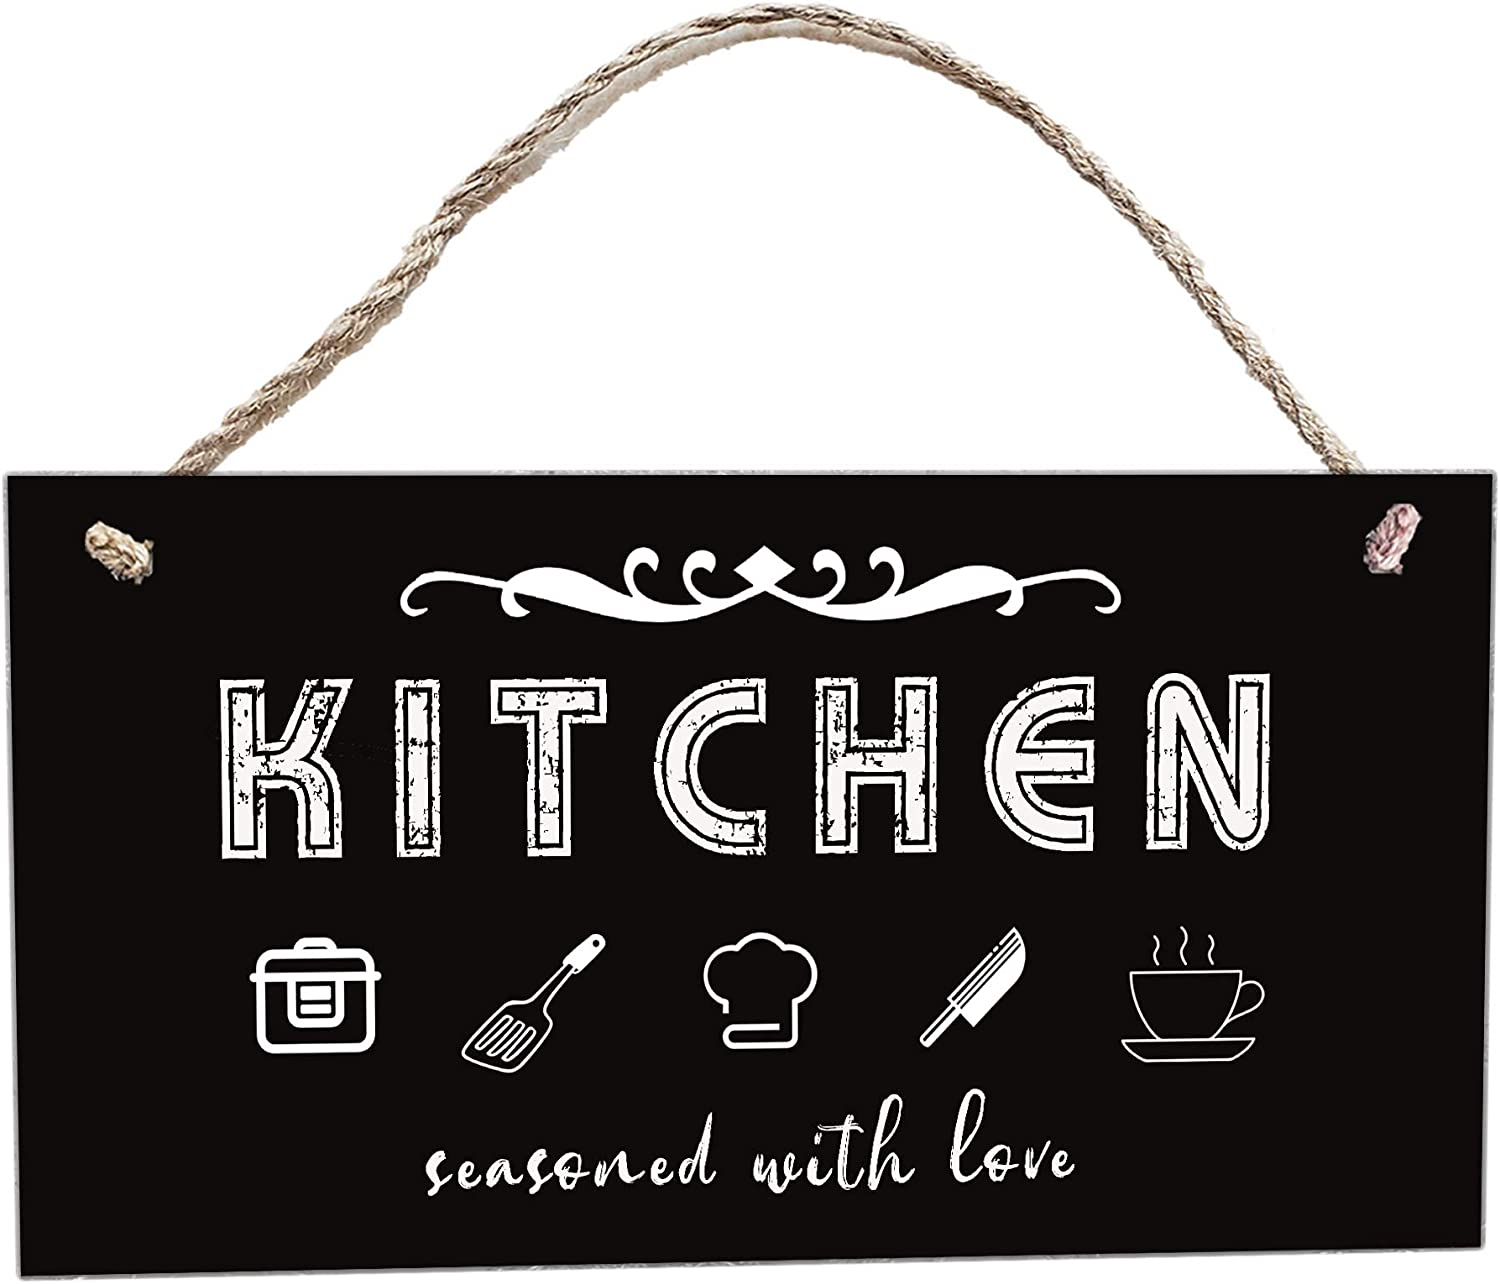 Kicthen Seasoned with Love Wall Kitchen Signs|Farmhouse Kitchen Decor|Rustic Wooden Sign Kitchen|Hanging Wall Art for Kitchen|Funny Saying Decorations for Kitchen, Moms Gifts|12X6-Inch(Black)